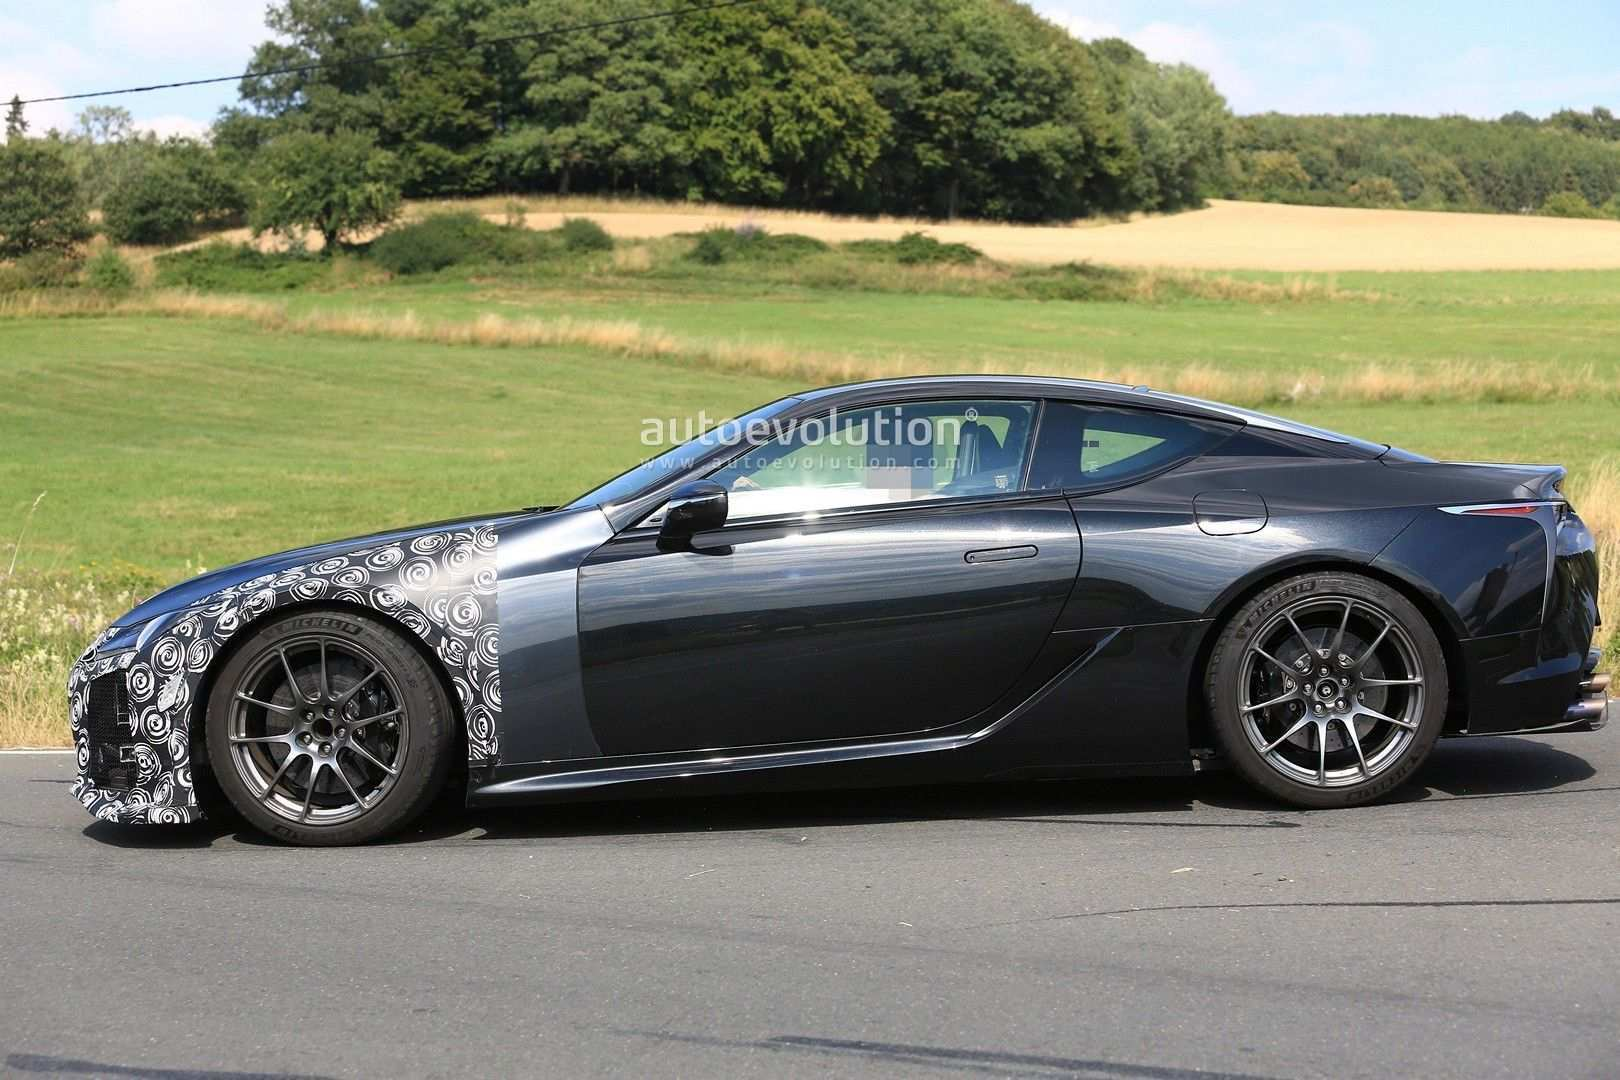 76 Great Lexus 2020 Lc Pictures by Lexus 2020 Lc